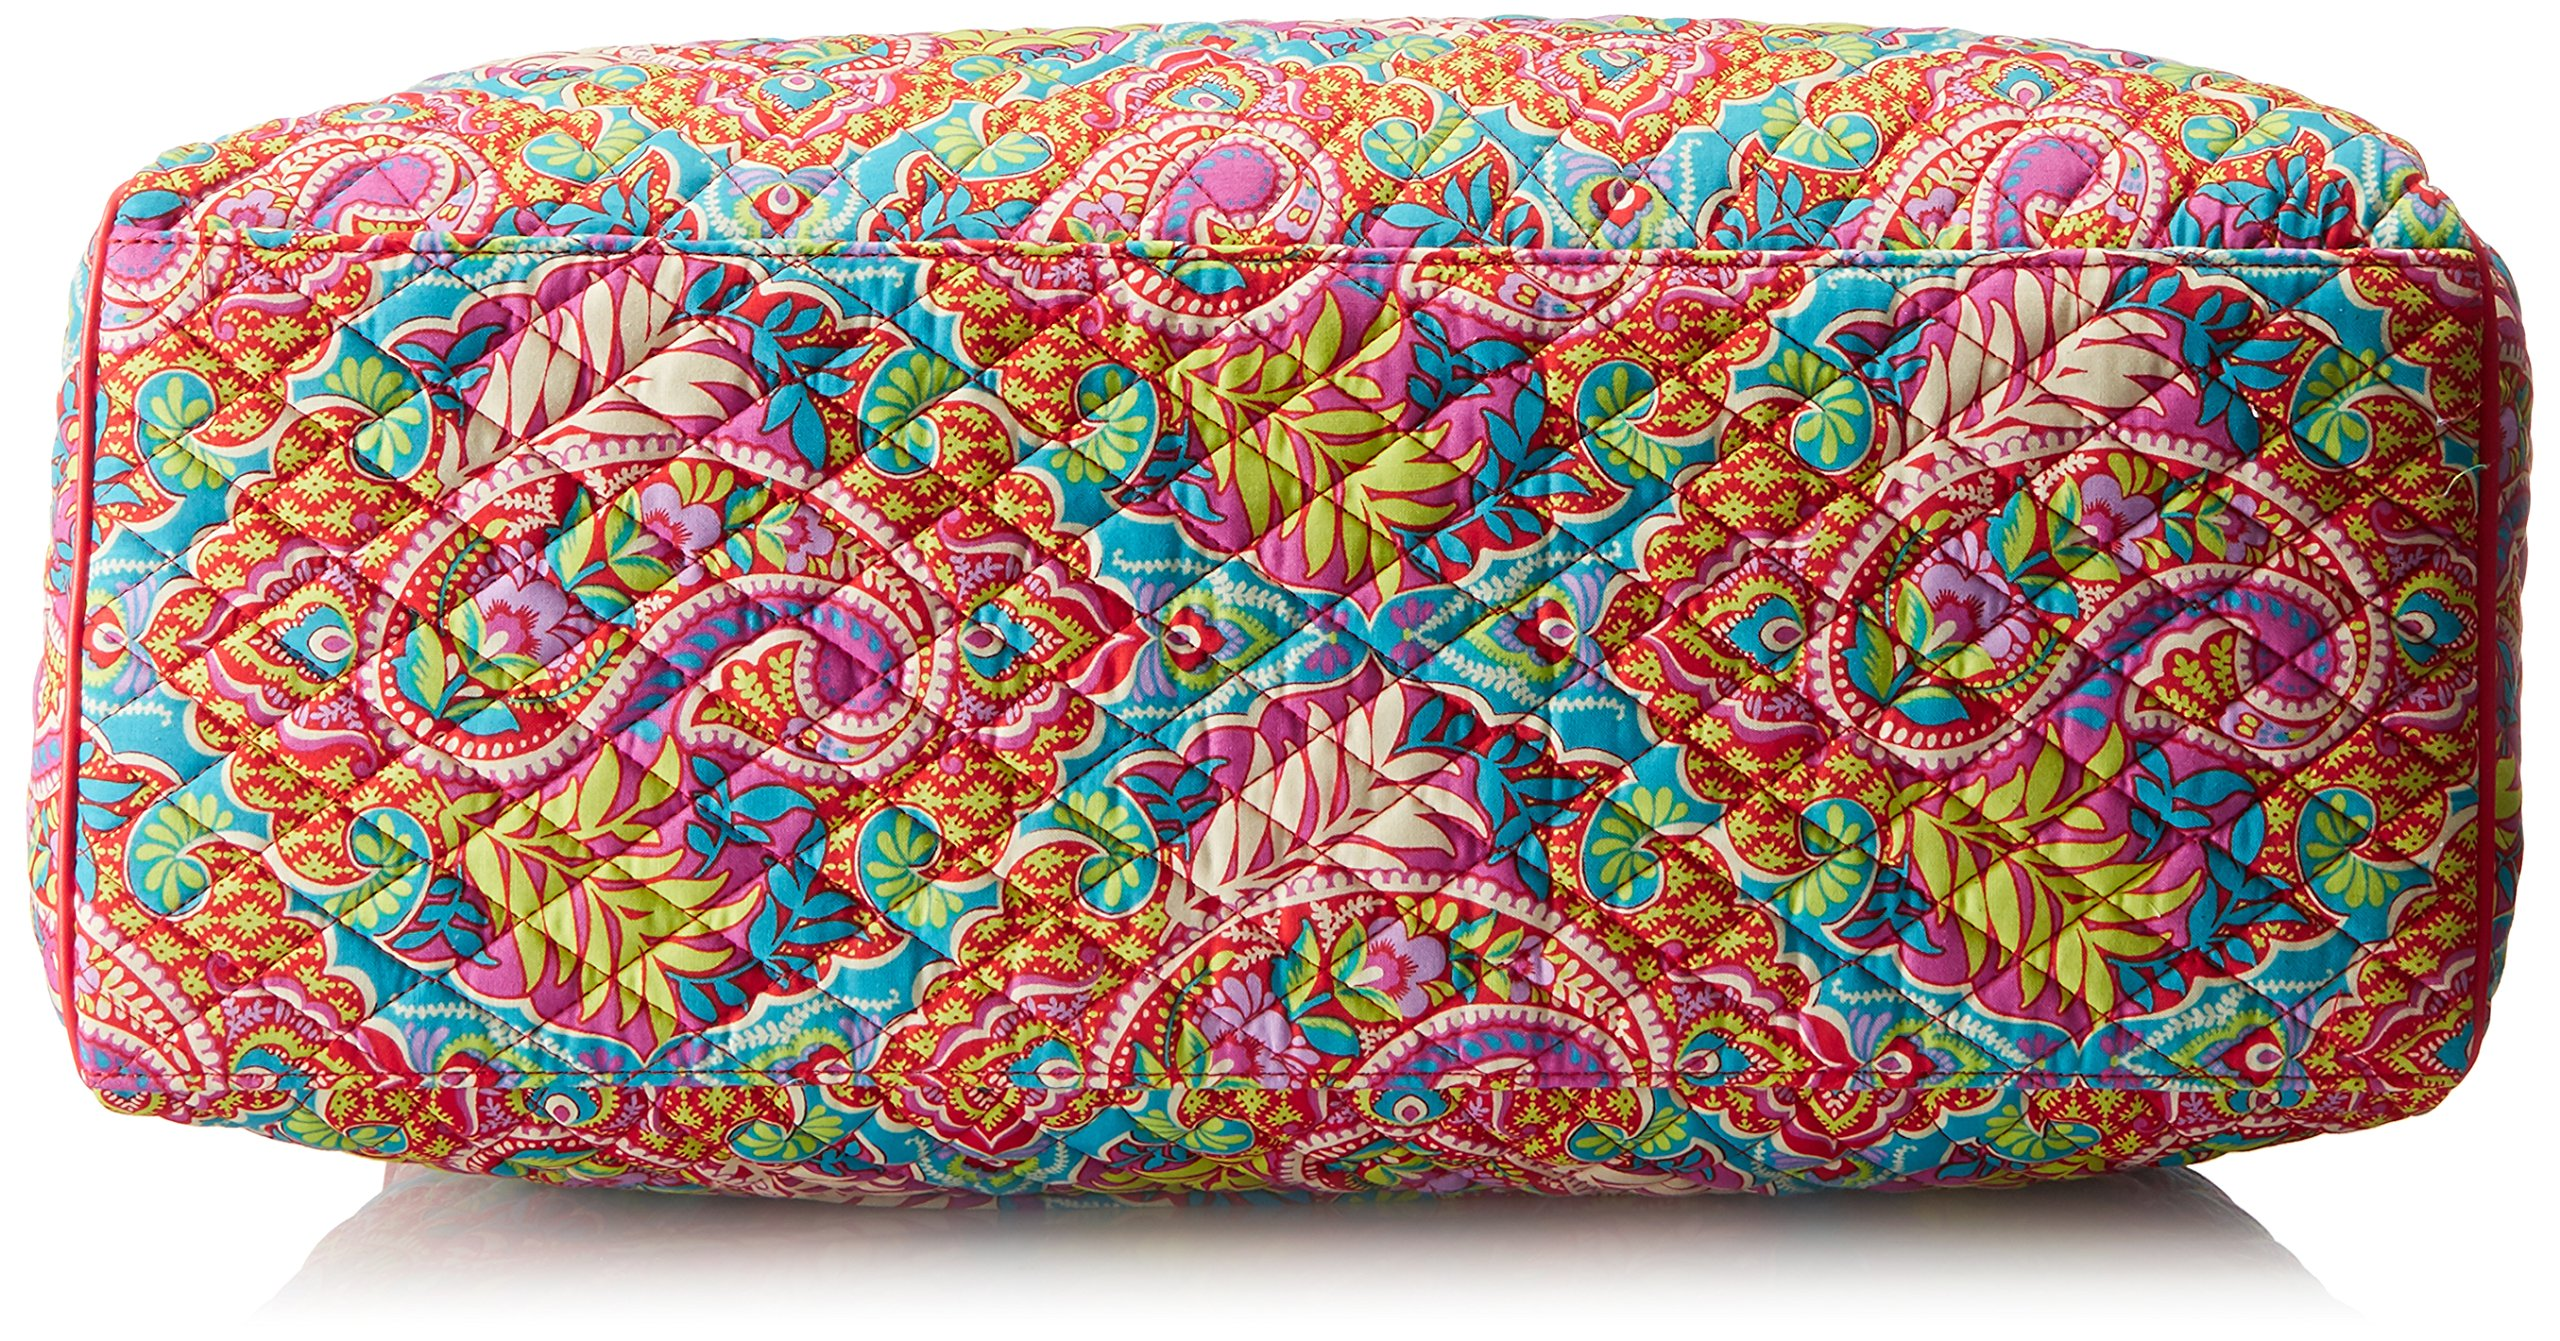 Vera Bradley Women's Triple Compartment Travel Bag, Paisley in Paradise Red by Vera Bradley (Image #4)